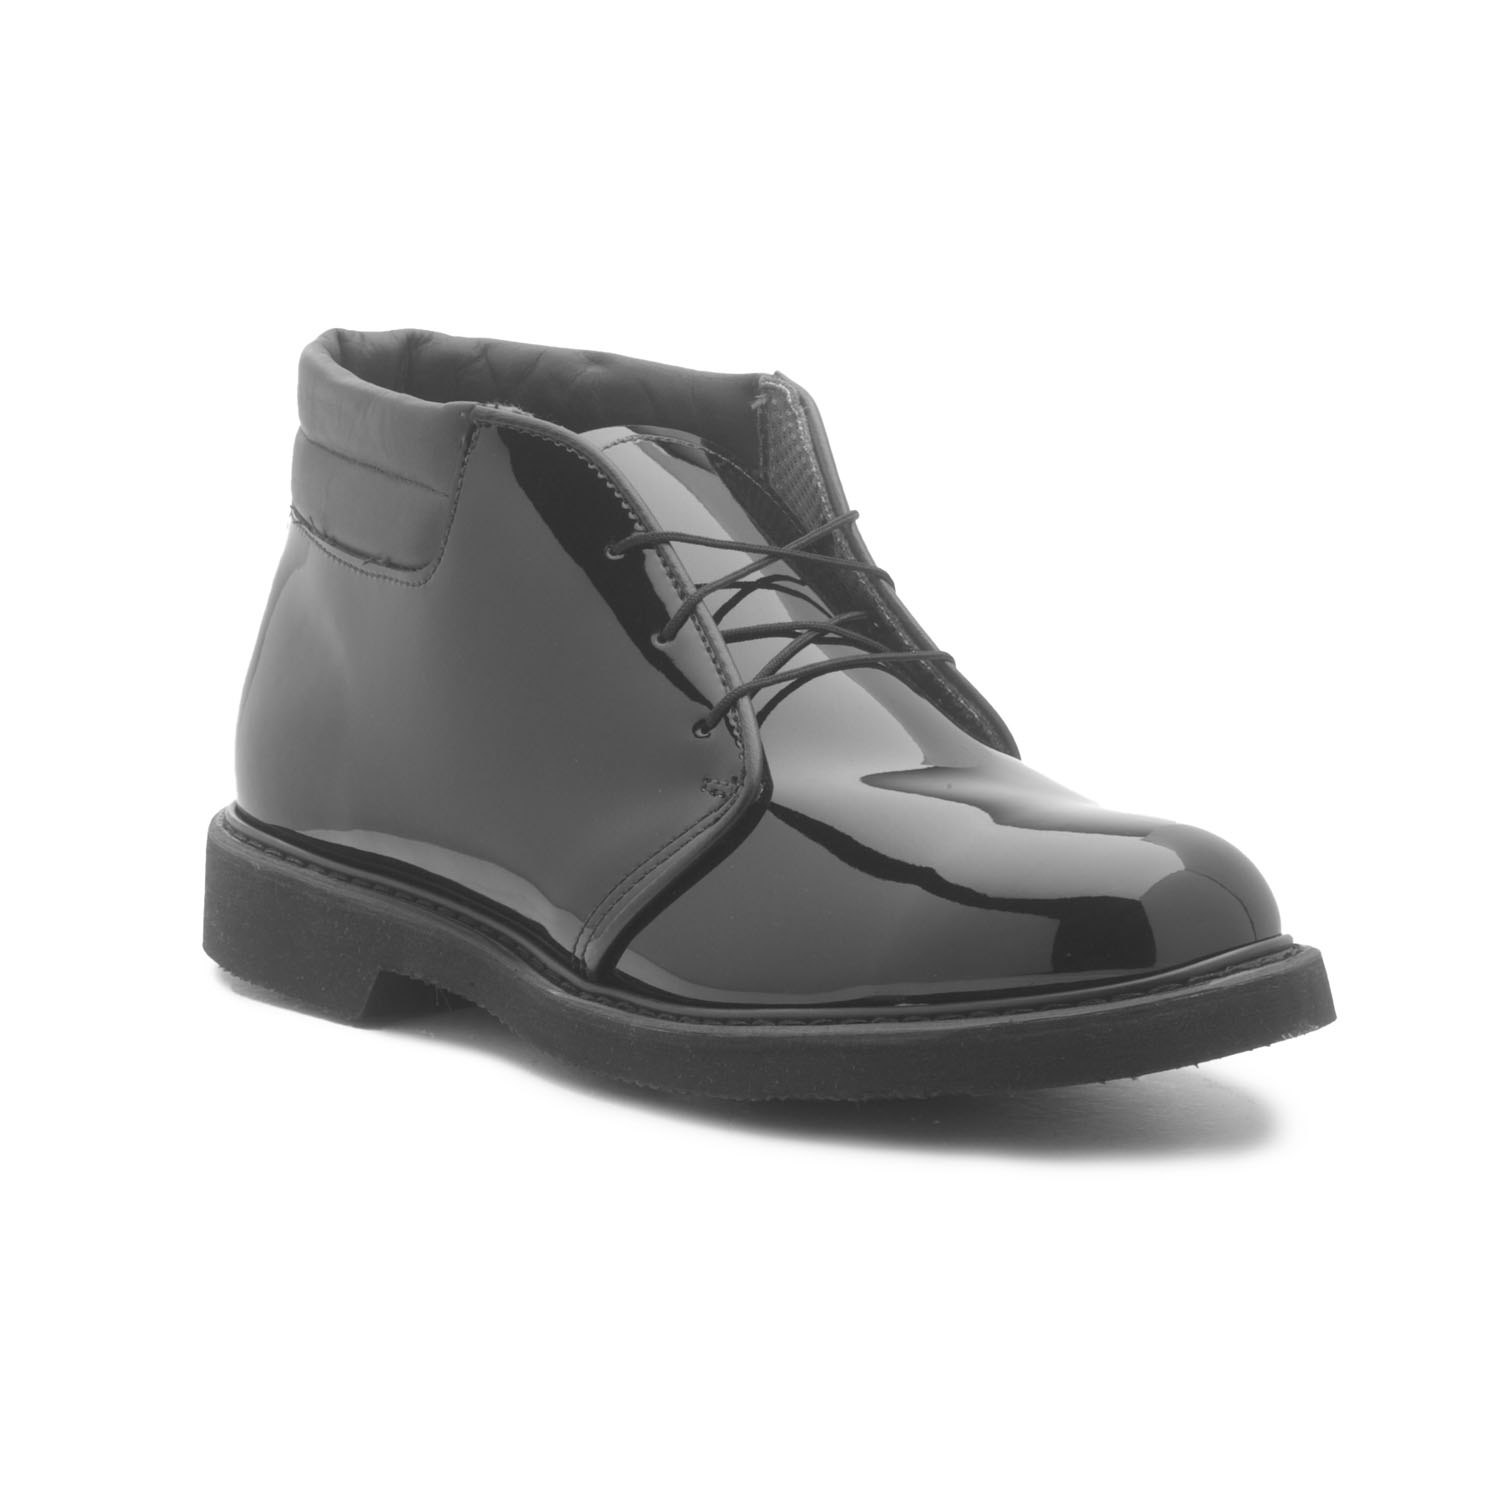 Bates Lites High Gloss Chukka Boot